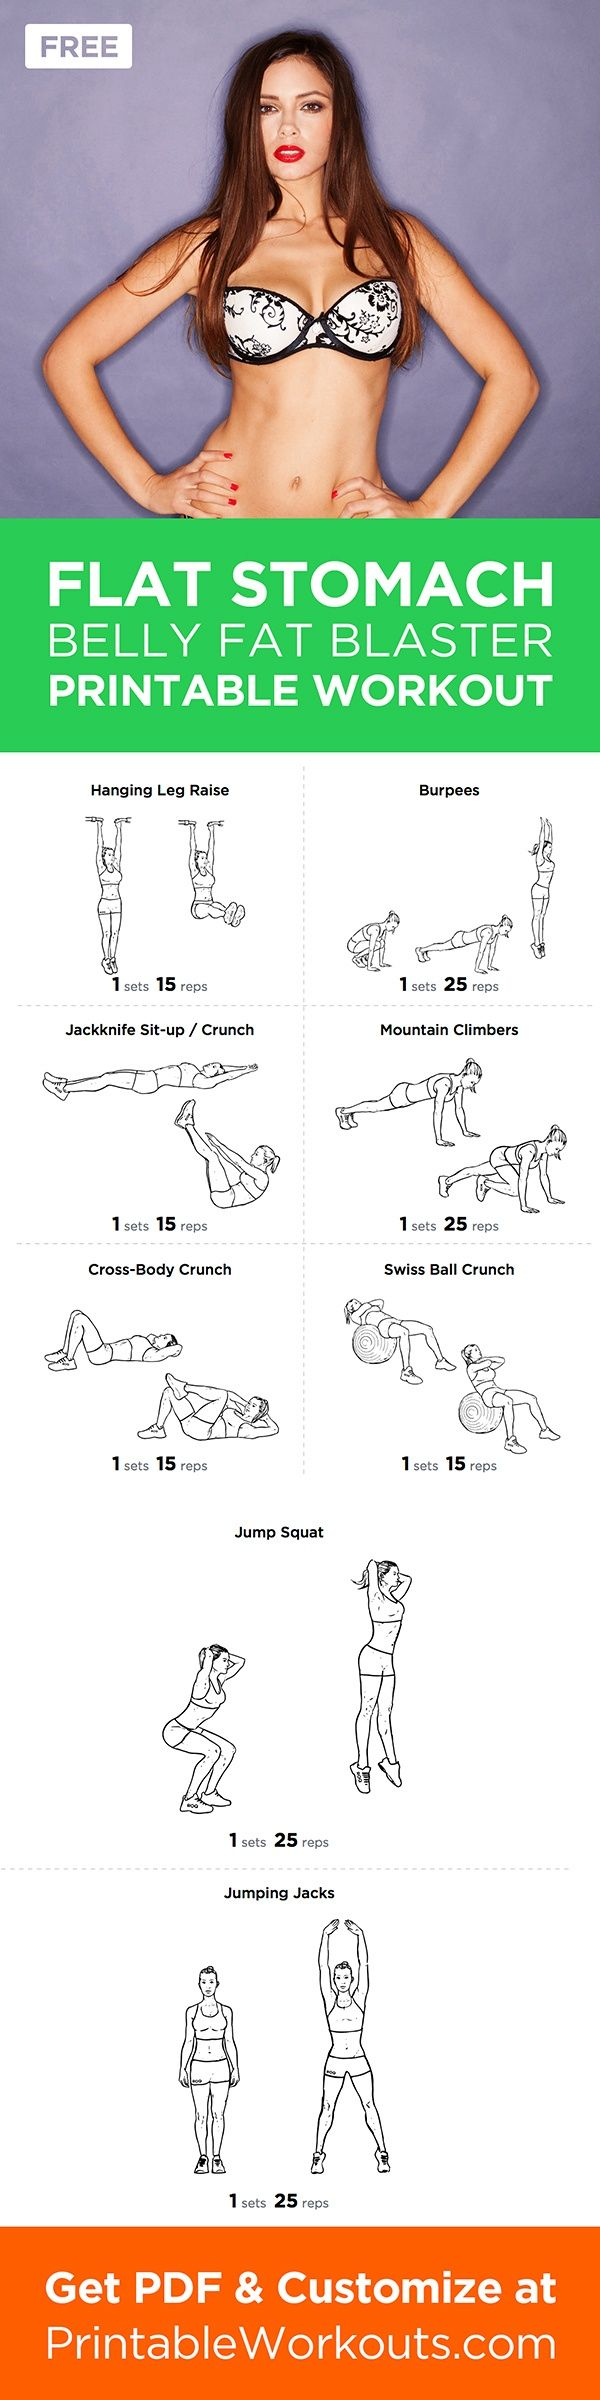 Make Your Day Work! Here's When to Eat, Work Out, and Indulge | Get it Right, Get it Tight | Pinterest | Fitness, Workout and Exercise